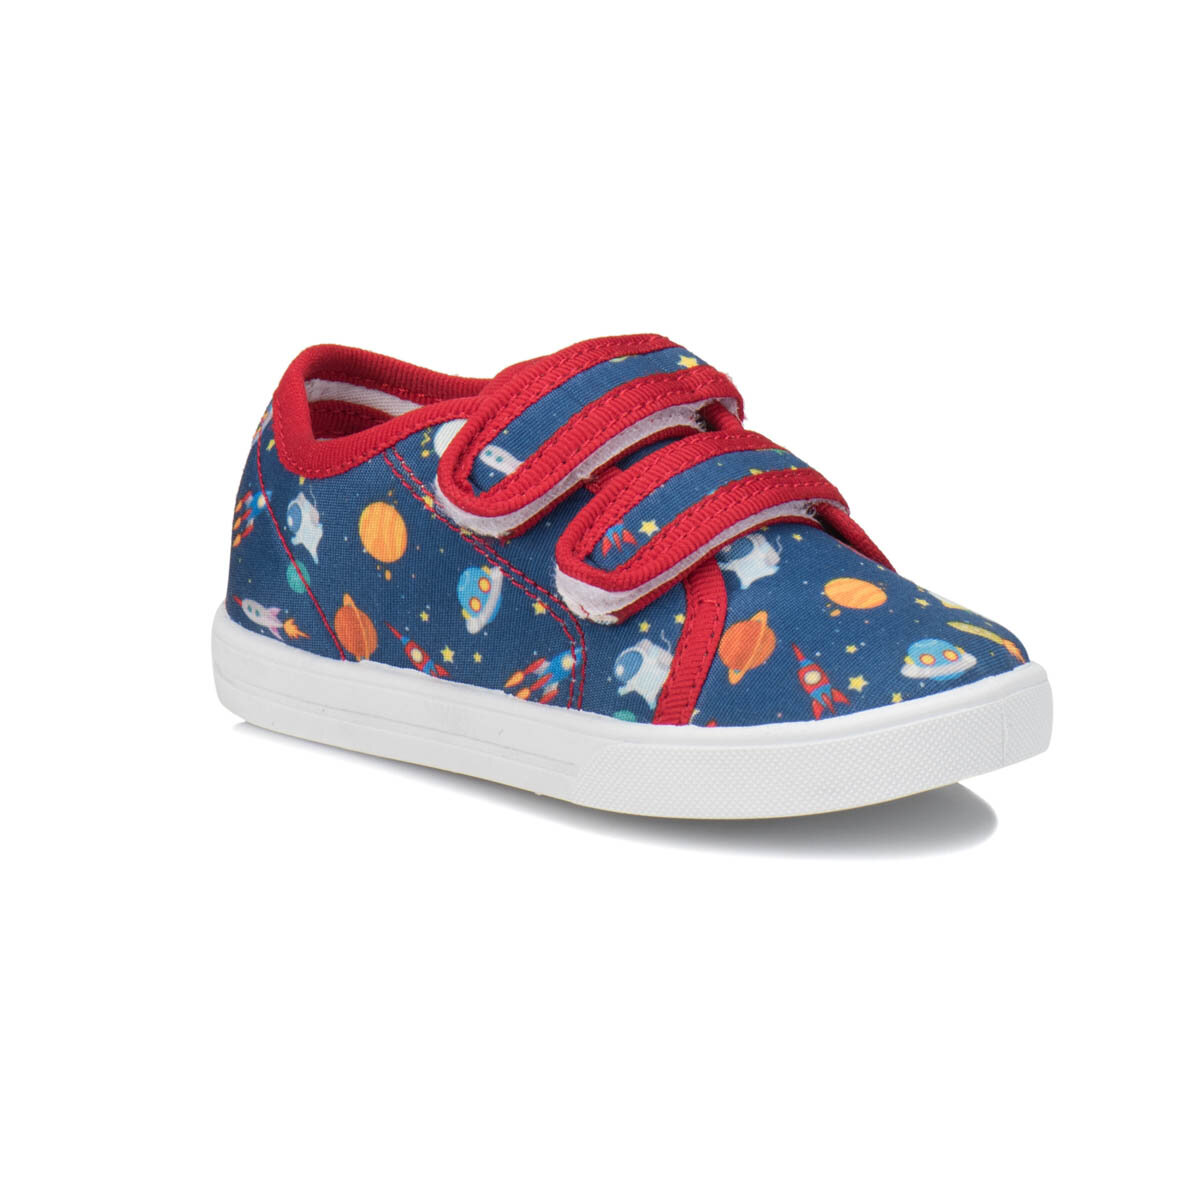 FLO FOREN Navy Blue Male Child Sneaker Shoes KINETIX